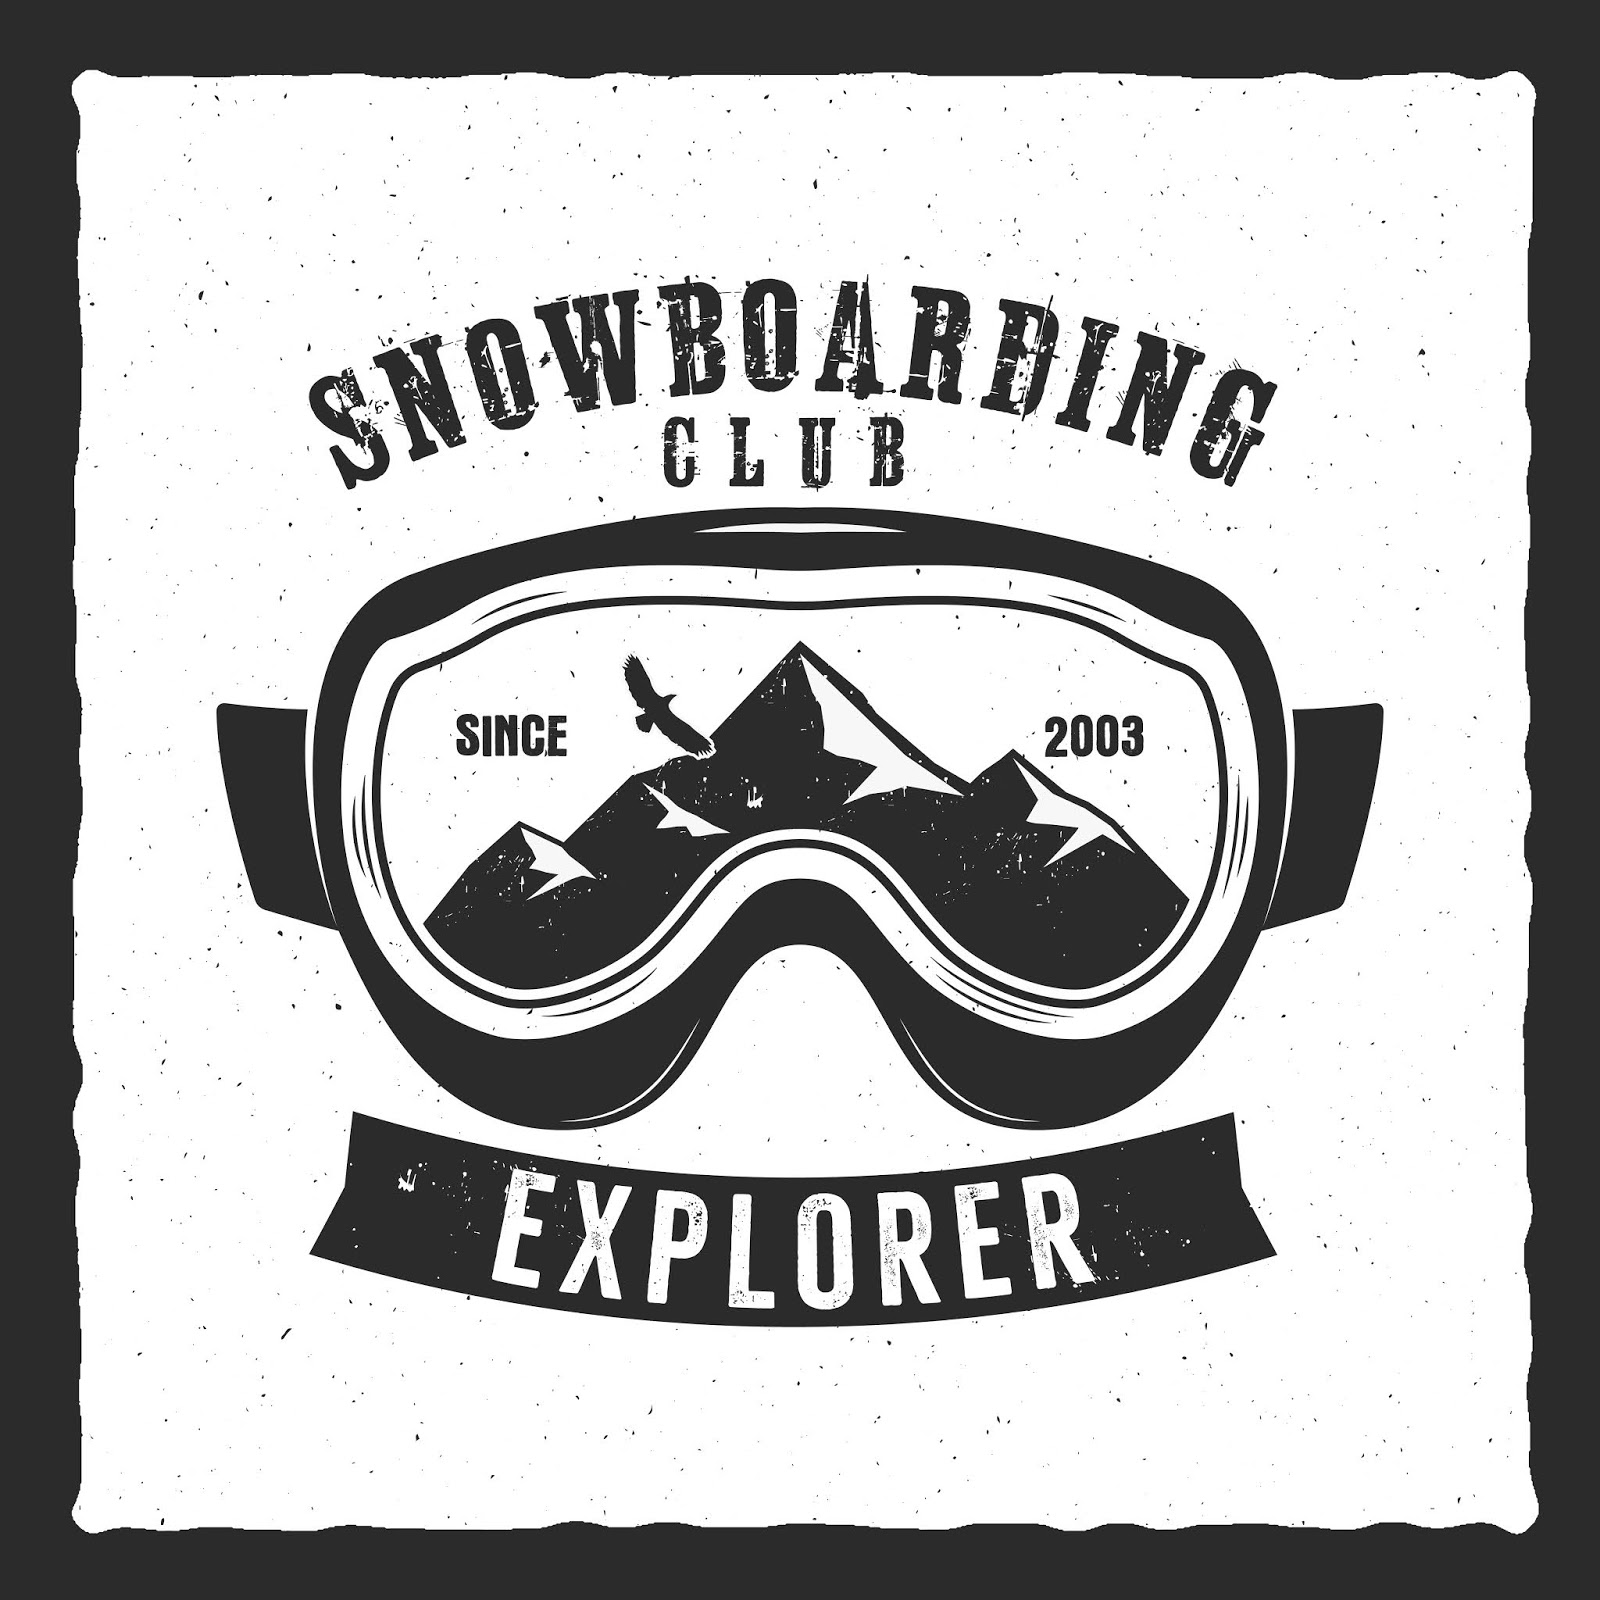 Snowboarding Goggles Extreme Logo Free Download Vector CDR, AI, EPS and PNG Formats